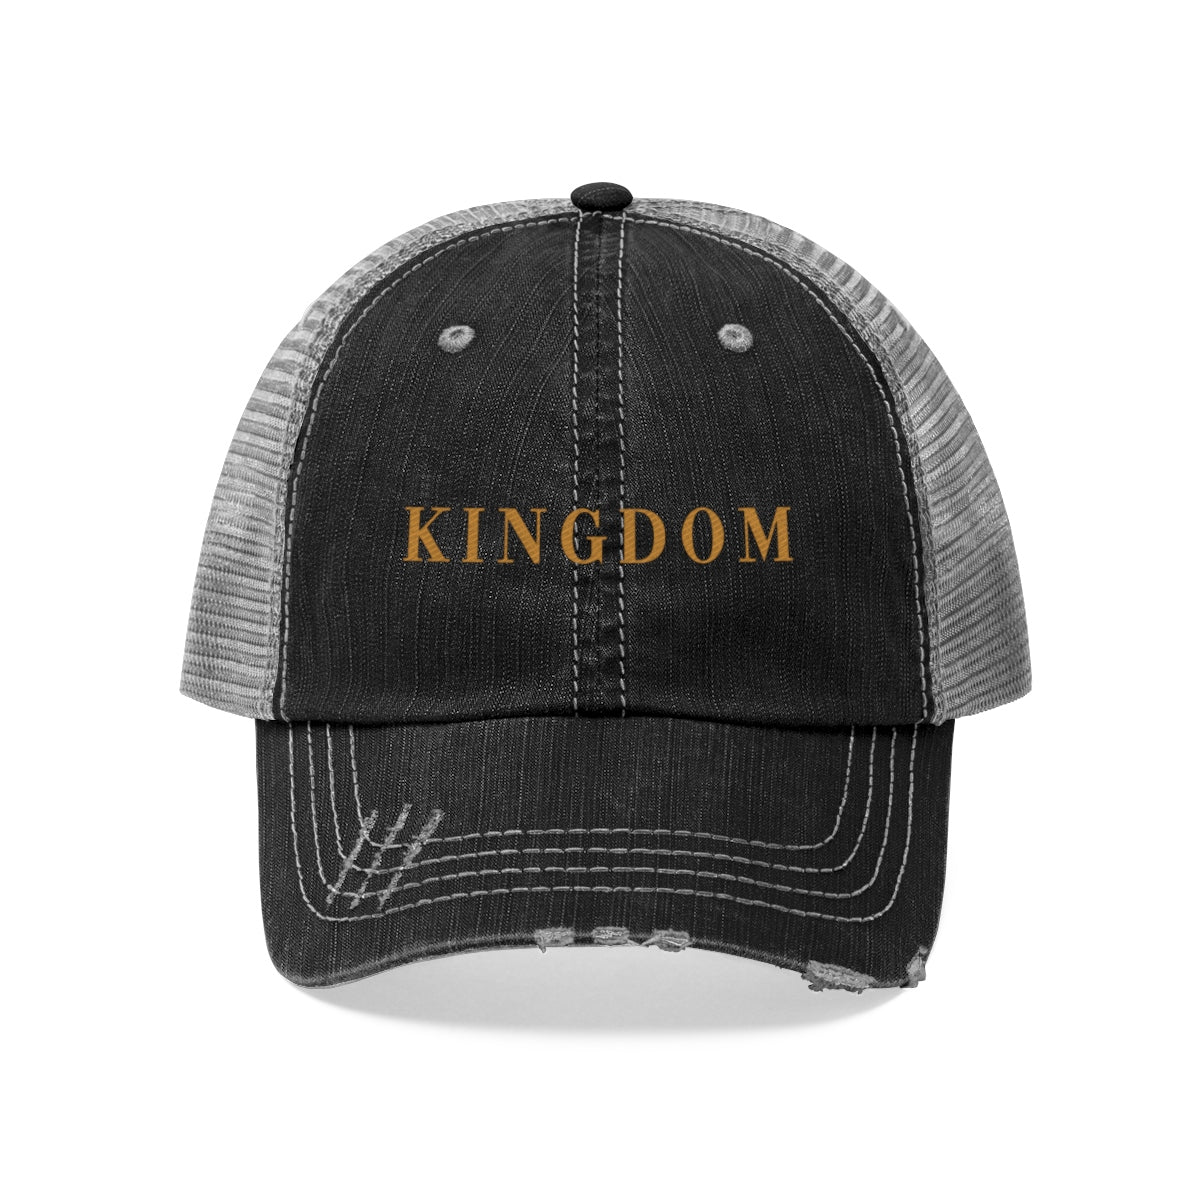 Kingdom Trucker Hat